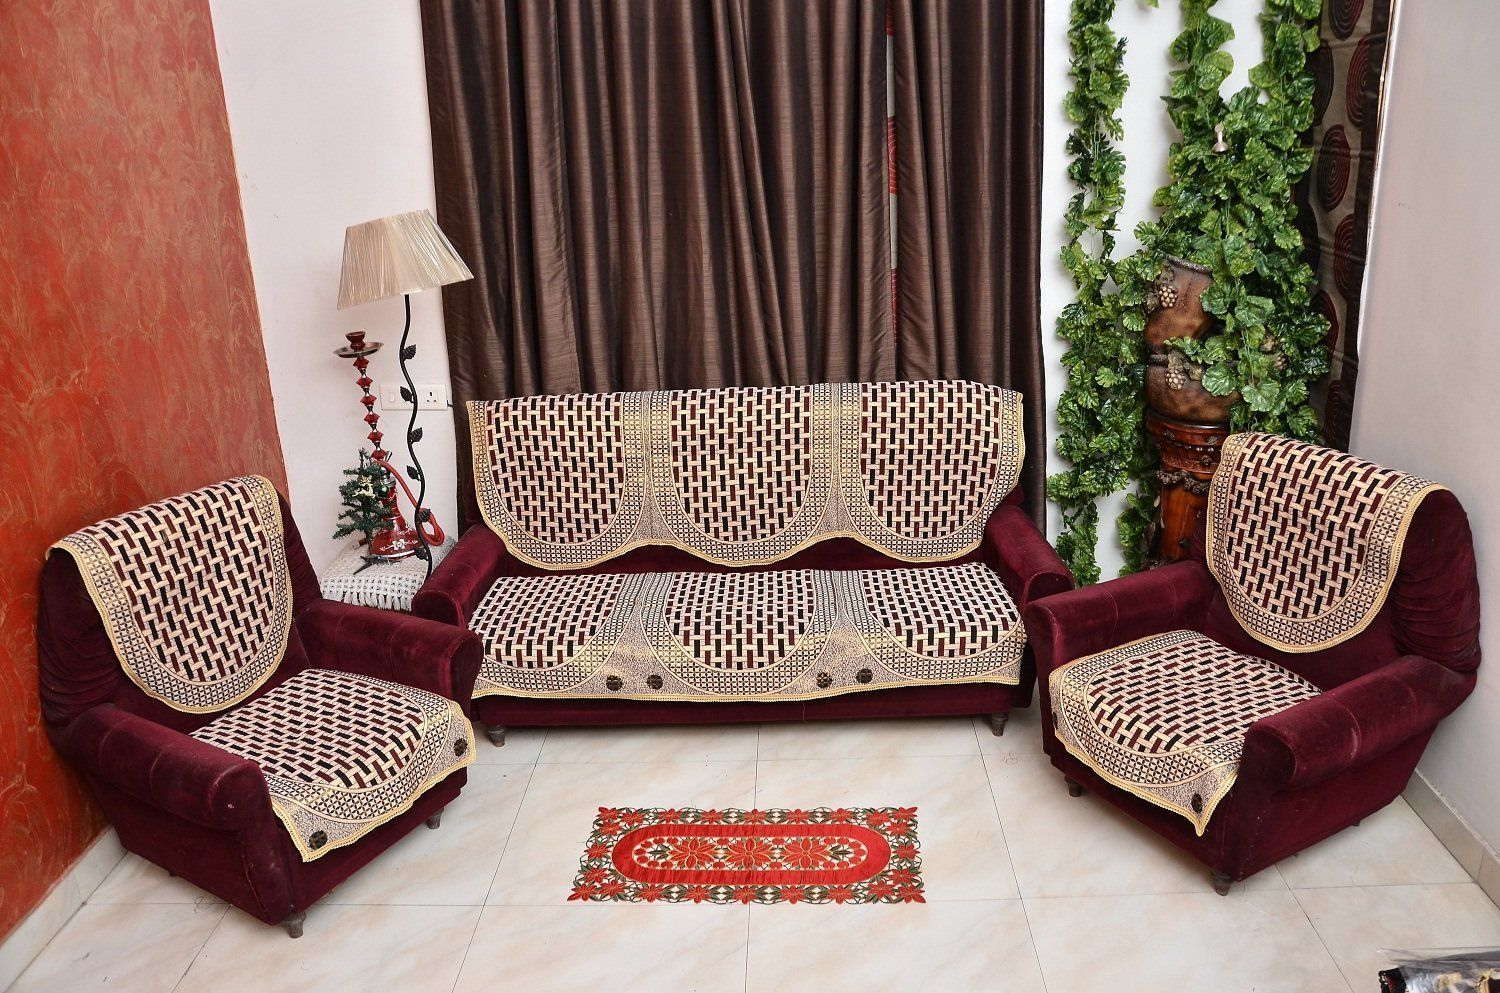 Benefits Of Using Sofa Cover Sofas Covers Indian